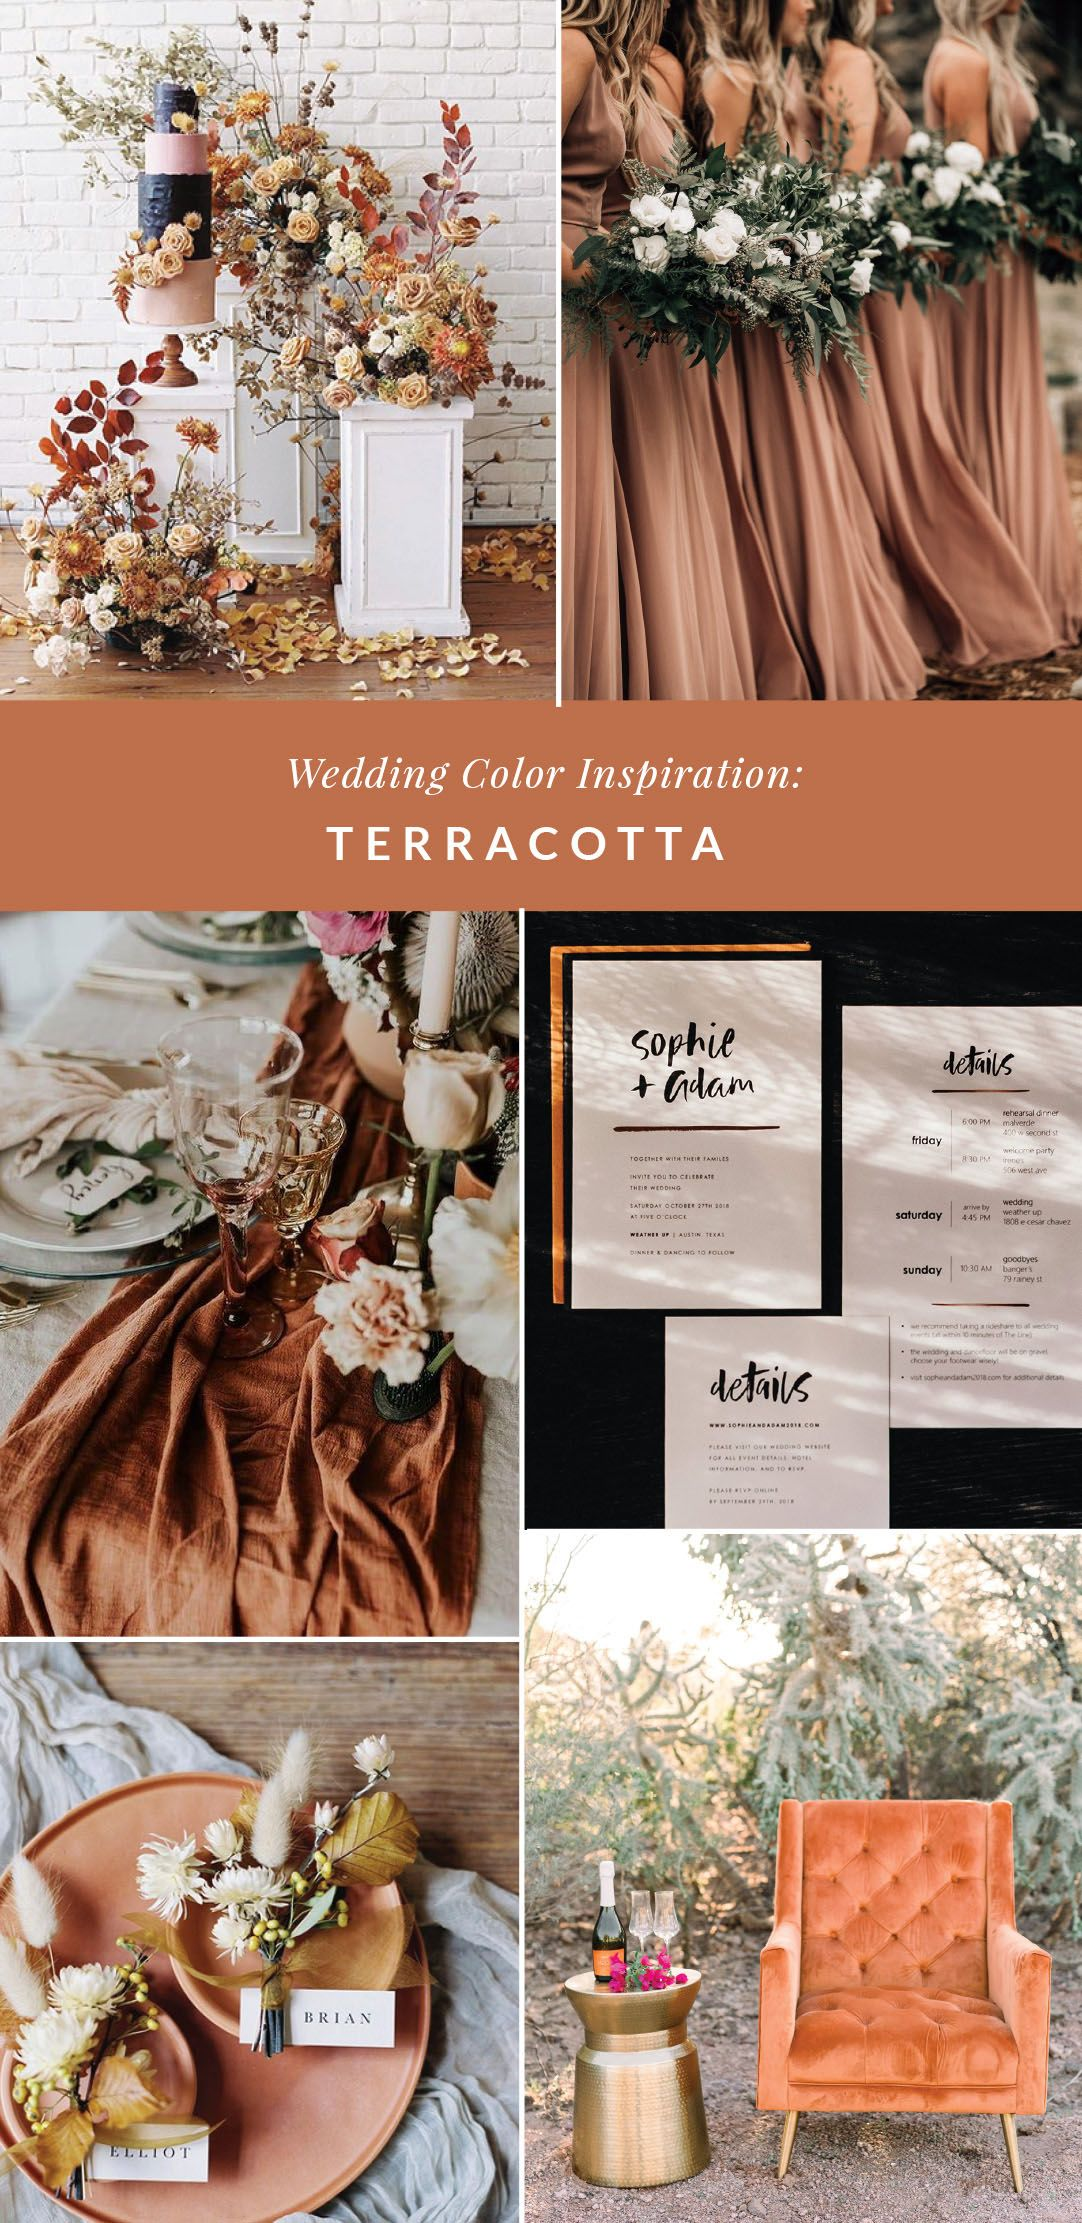 Top Wedding Color Trends For 2020 Fine Day Press In 2020 Top Wedding Colors Wedding Colors Wedding Color Trends